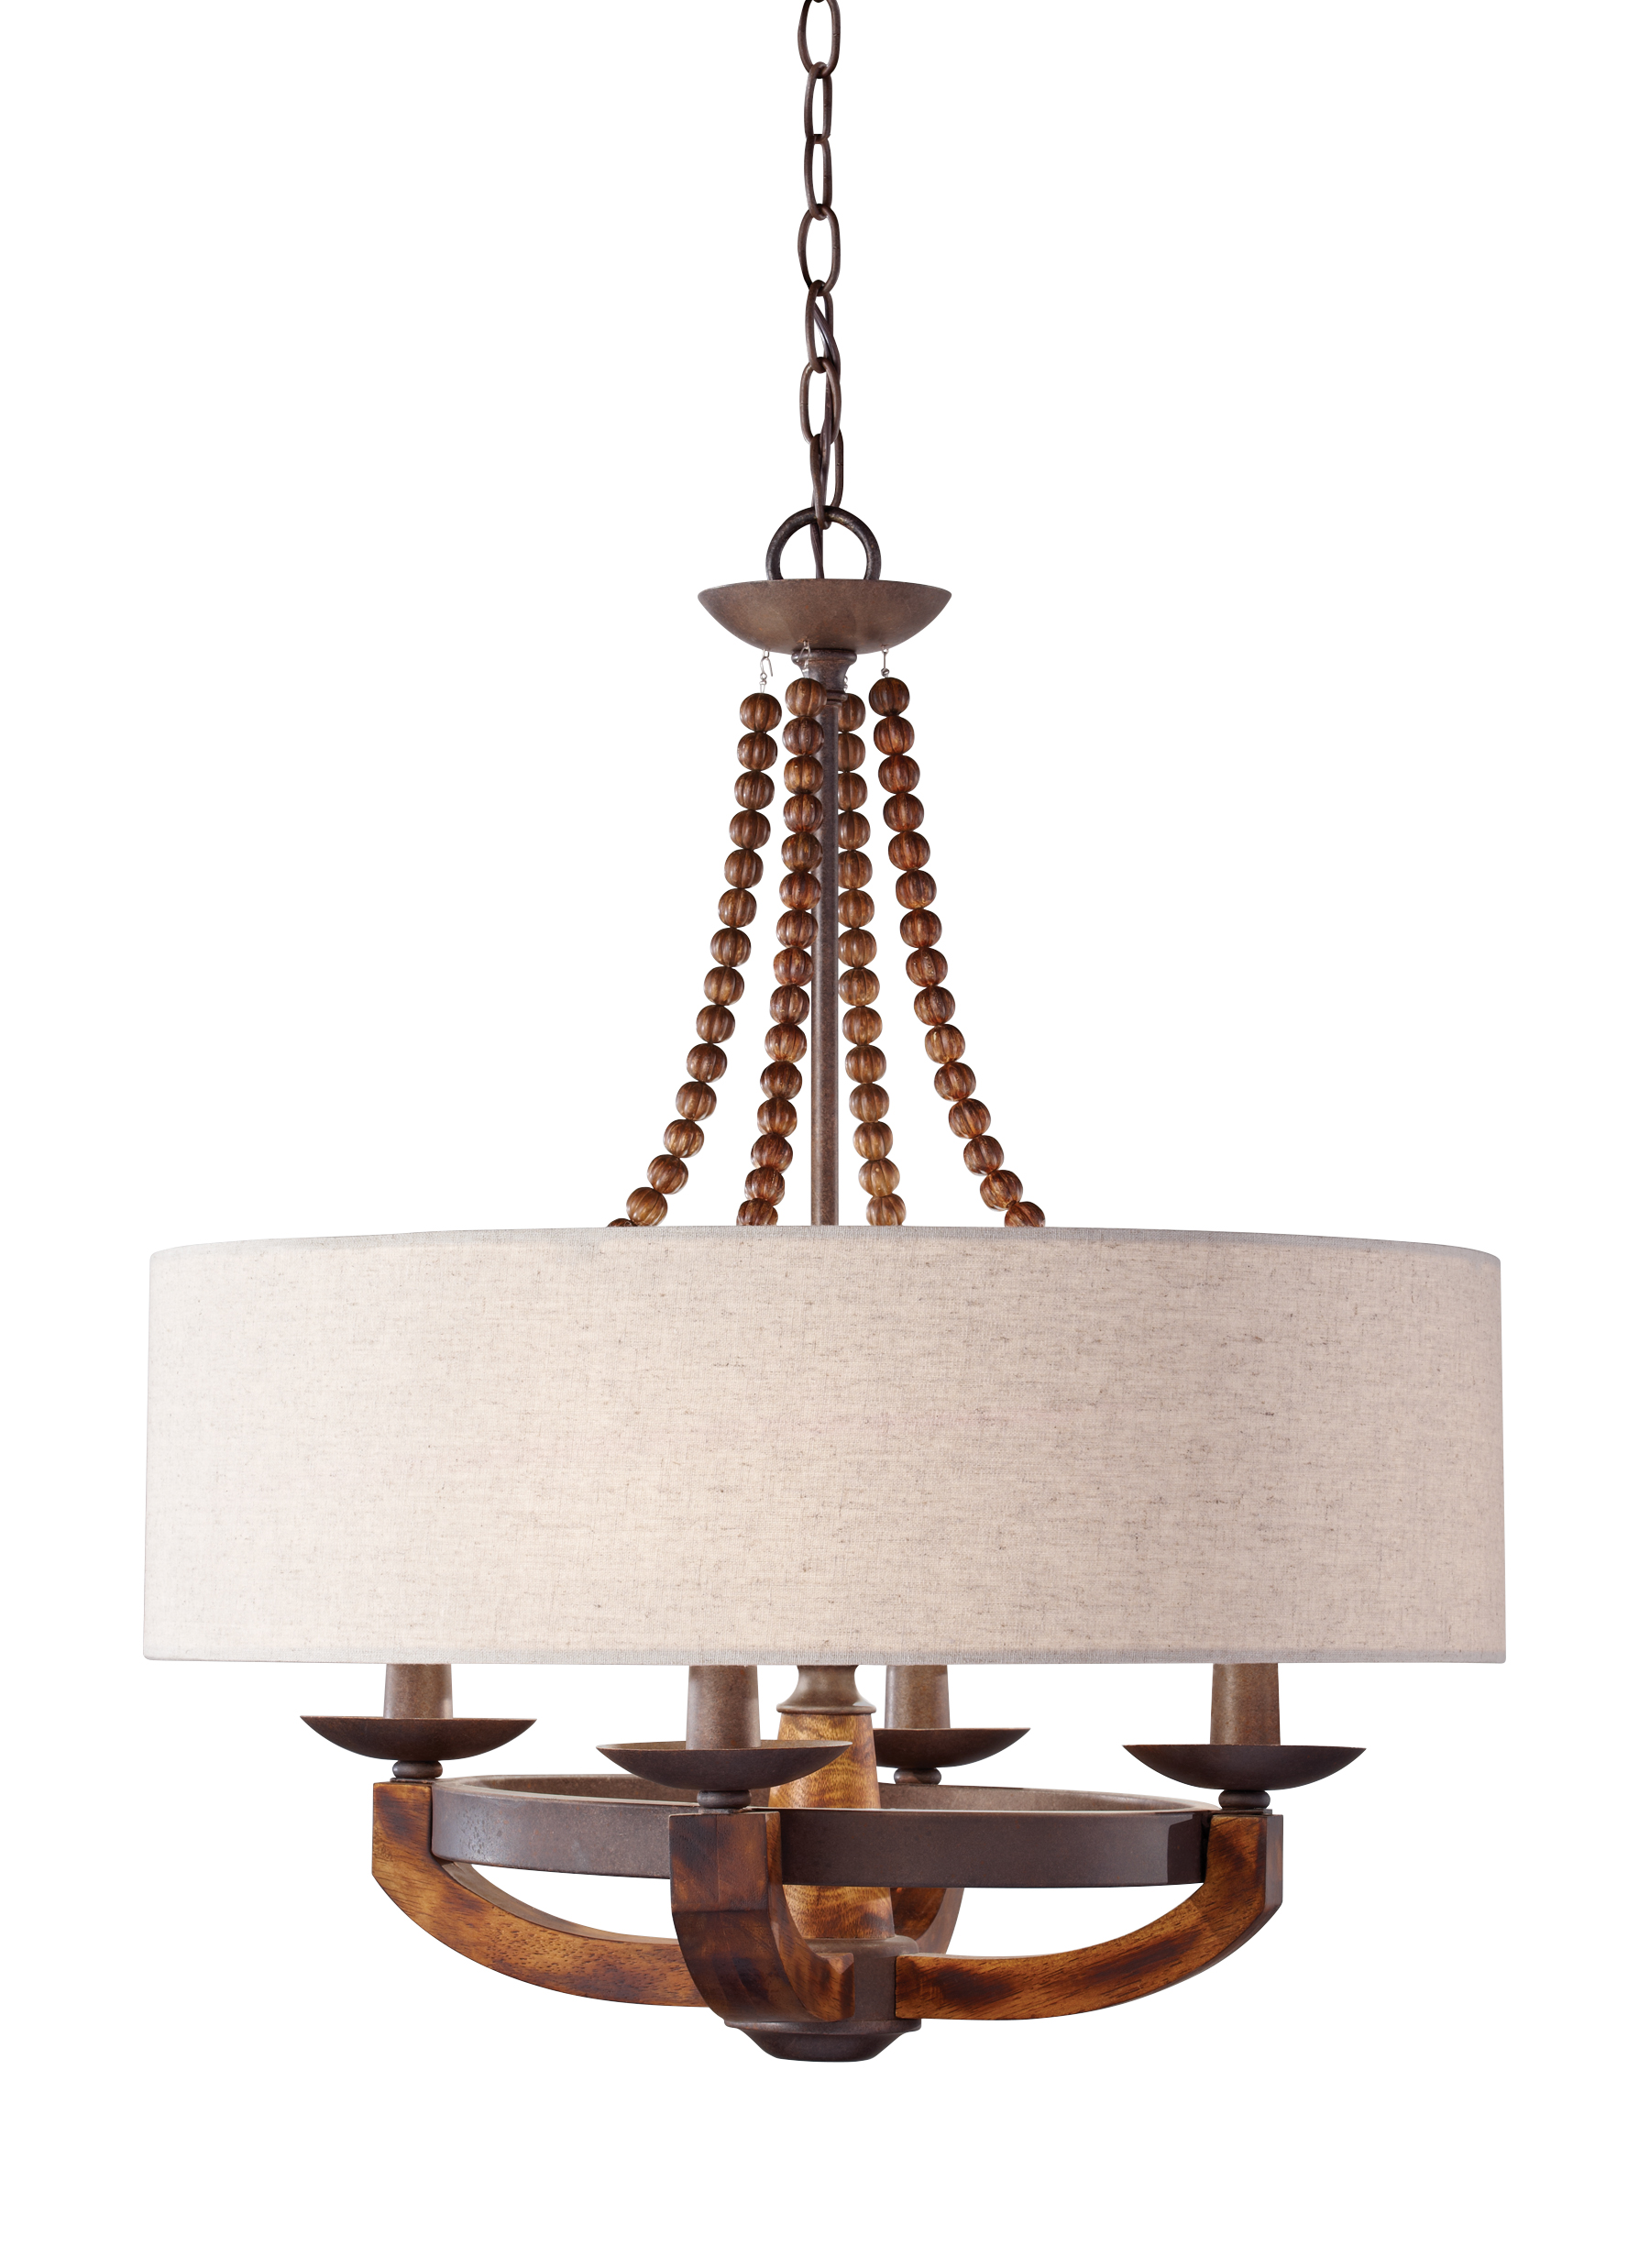 F27524ribwd4 light single tier chandelierrustic iron loading zoom mozeypictures Image collections